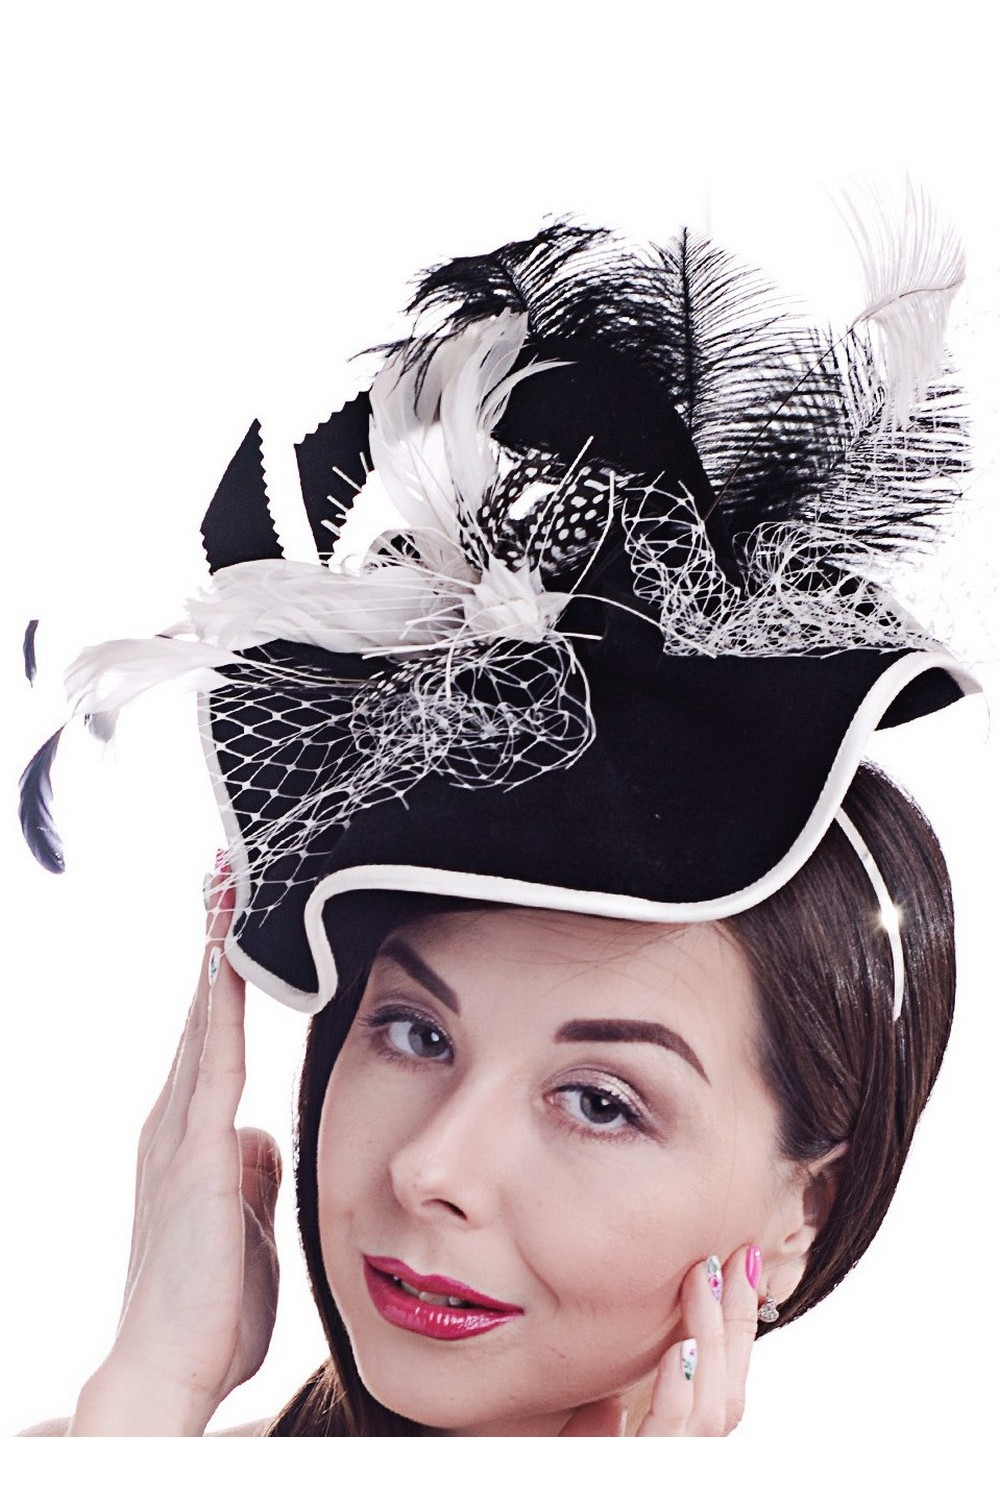 Buy Black and white exclusive felt women's feather hat in retro style, Unique designer stylish hat